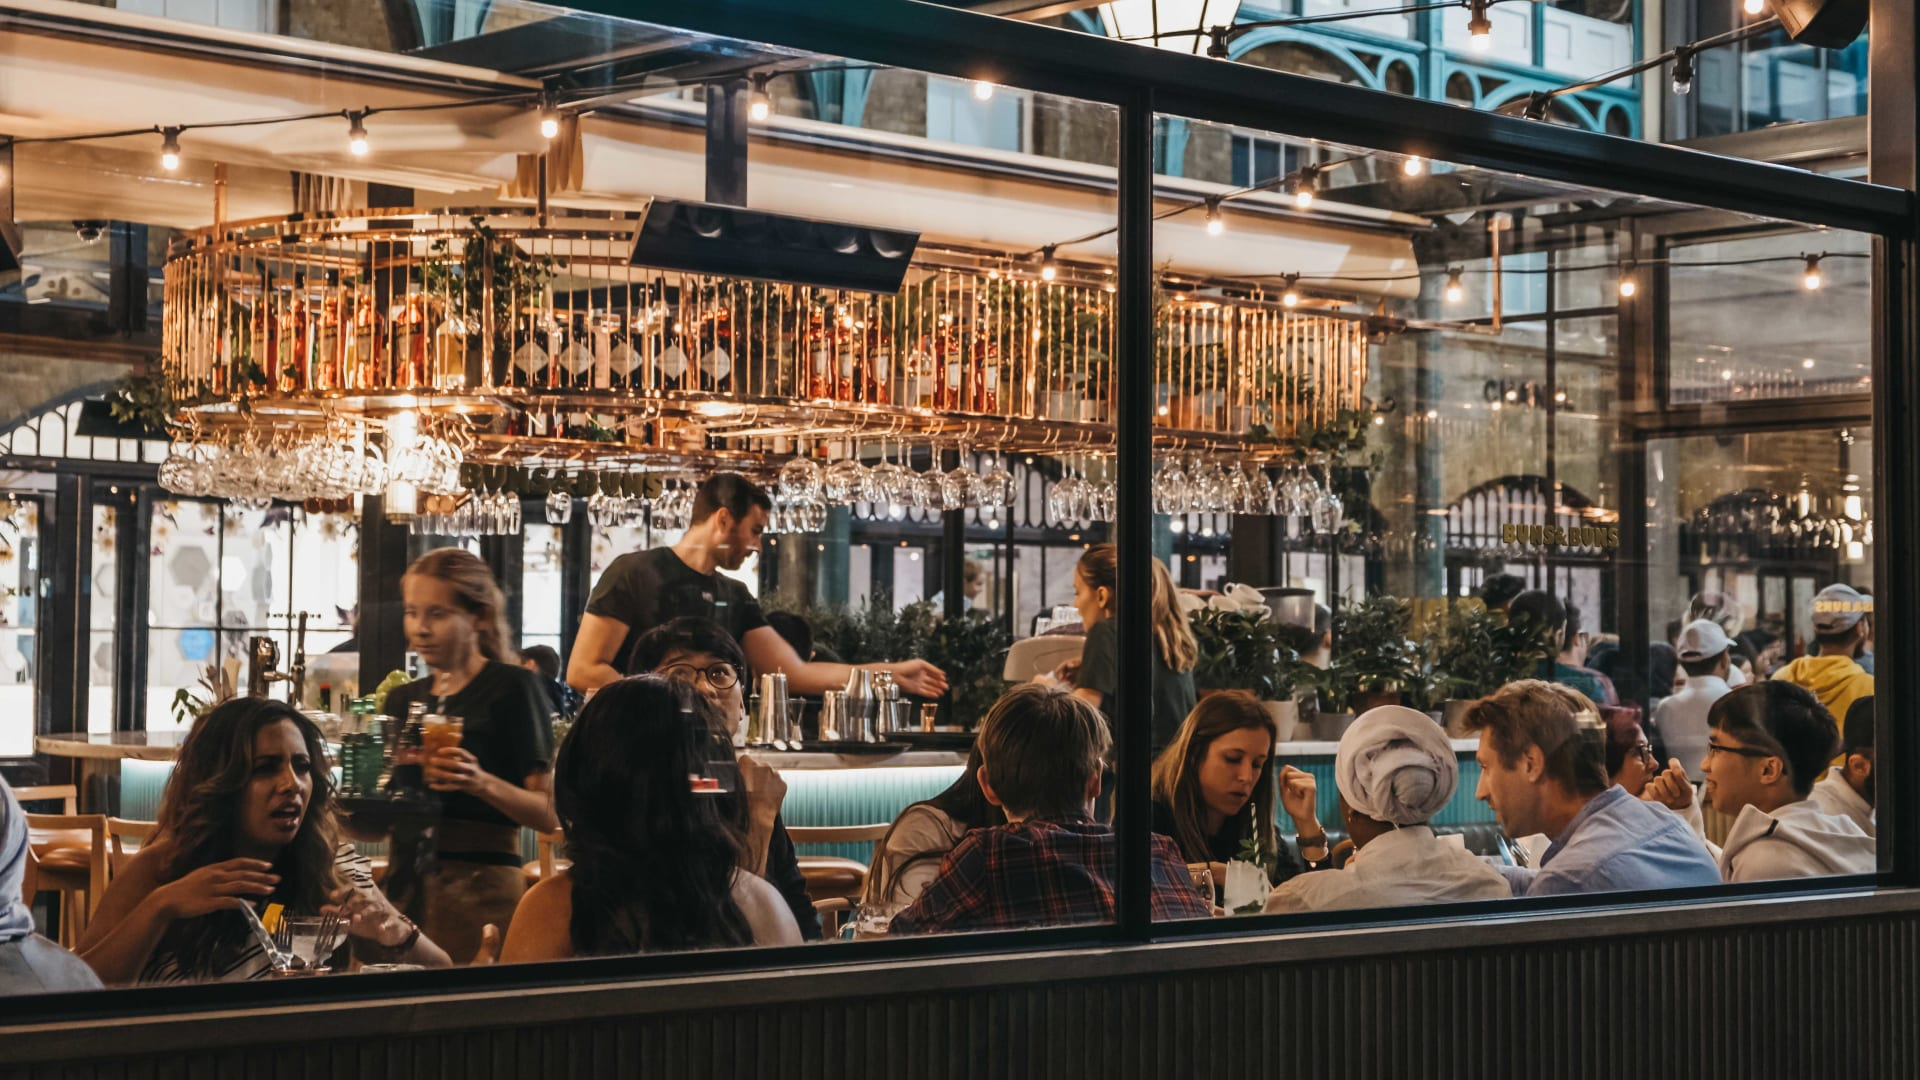 Is Owning a Restaurant a Valuable Business?